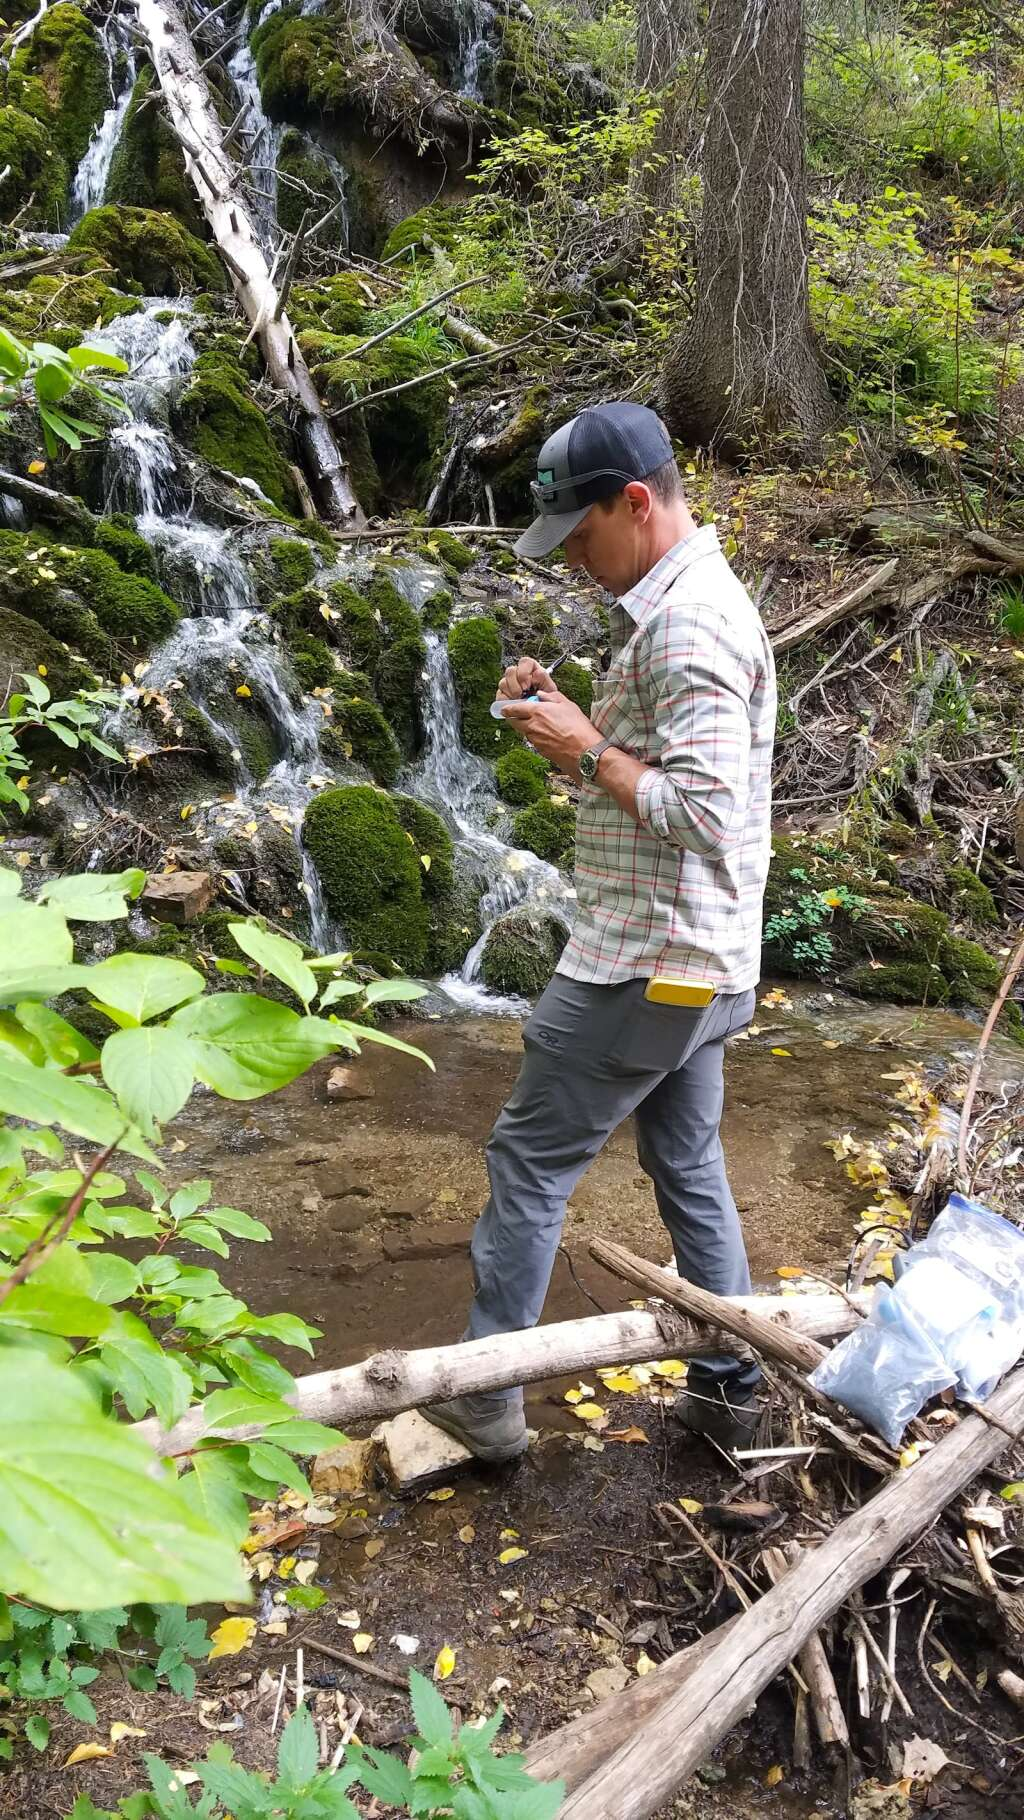 Ozark Underground Laboratory Senior Project Scientist Dave Woods installs small charcoal samplers in Dead Horse Creek. Tracers placed in the water upstream will accumulate on the charcoal, allowing the specific upstream water sources to be documented. | White River National Forest/Courtesy photo